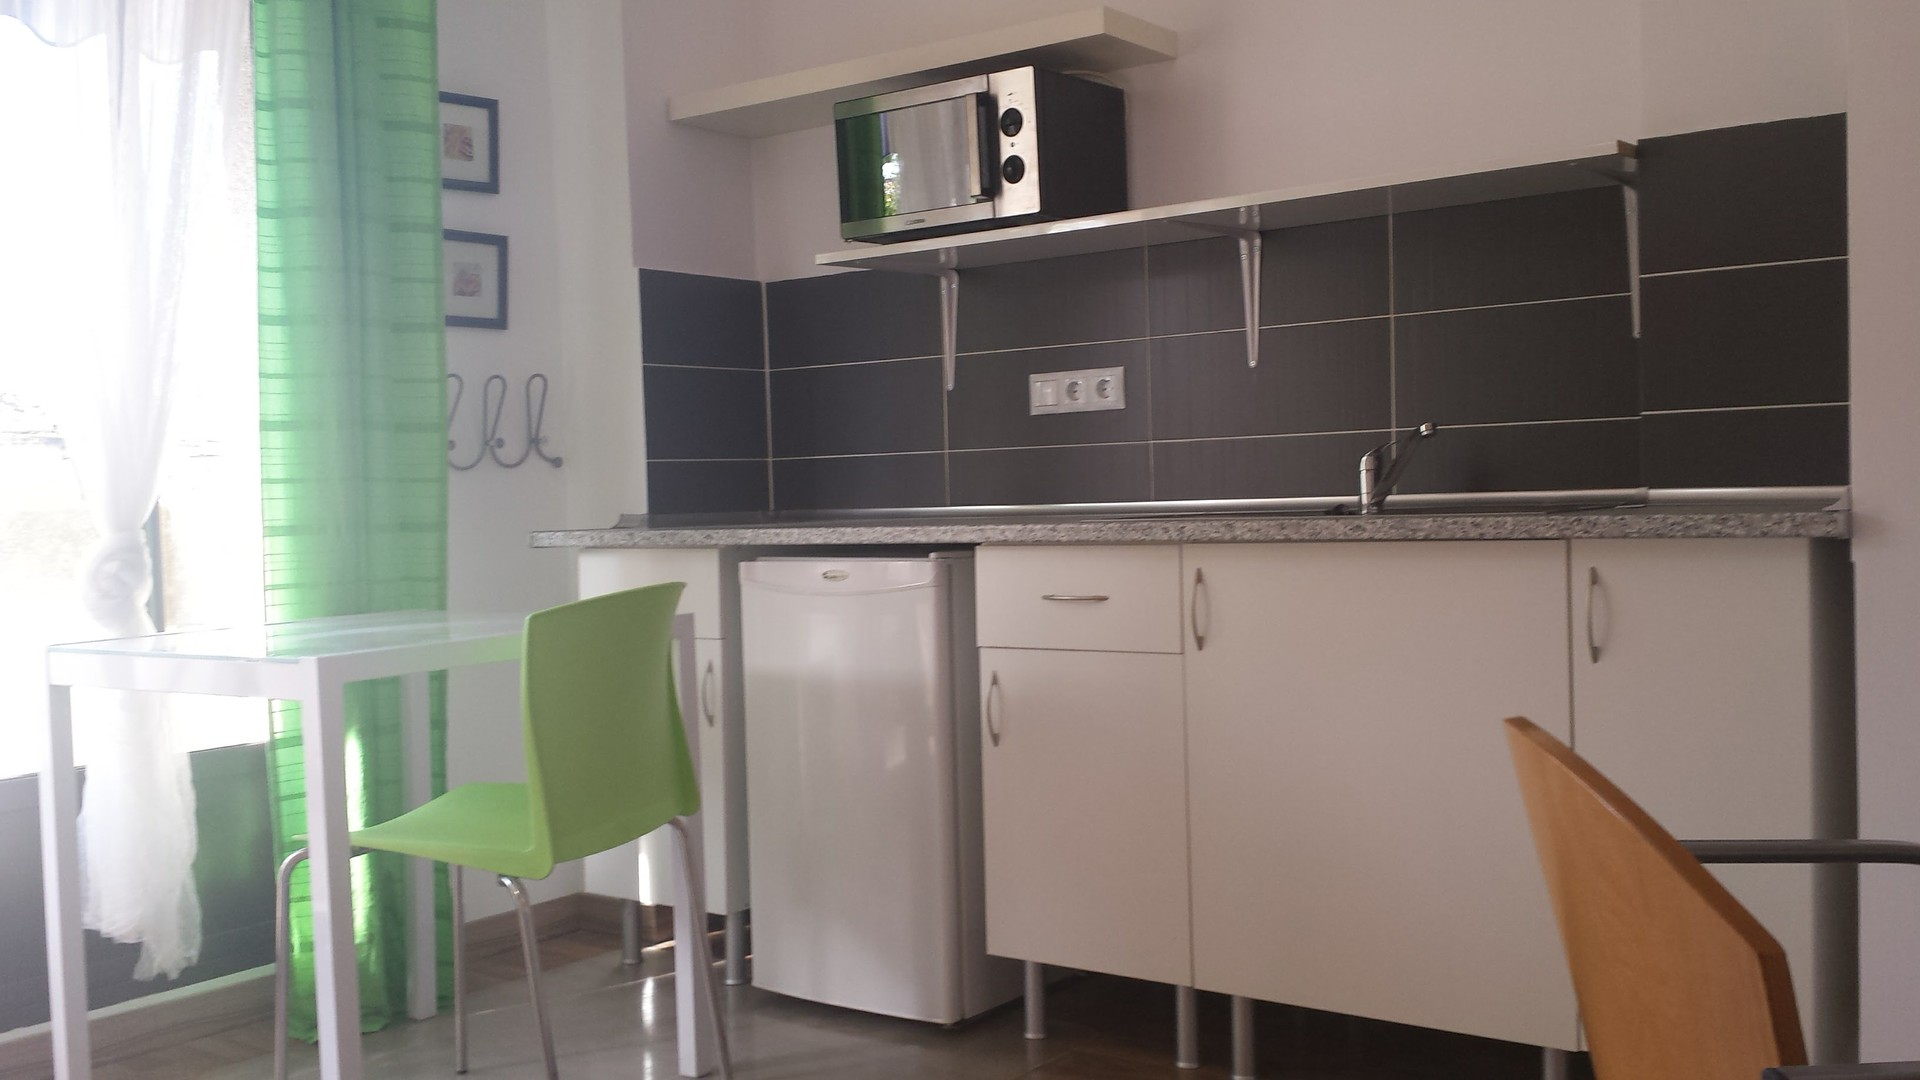 mini studio apartment private kitchen bathroom and On rooms for rent with private bathroom and kitchen